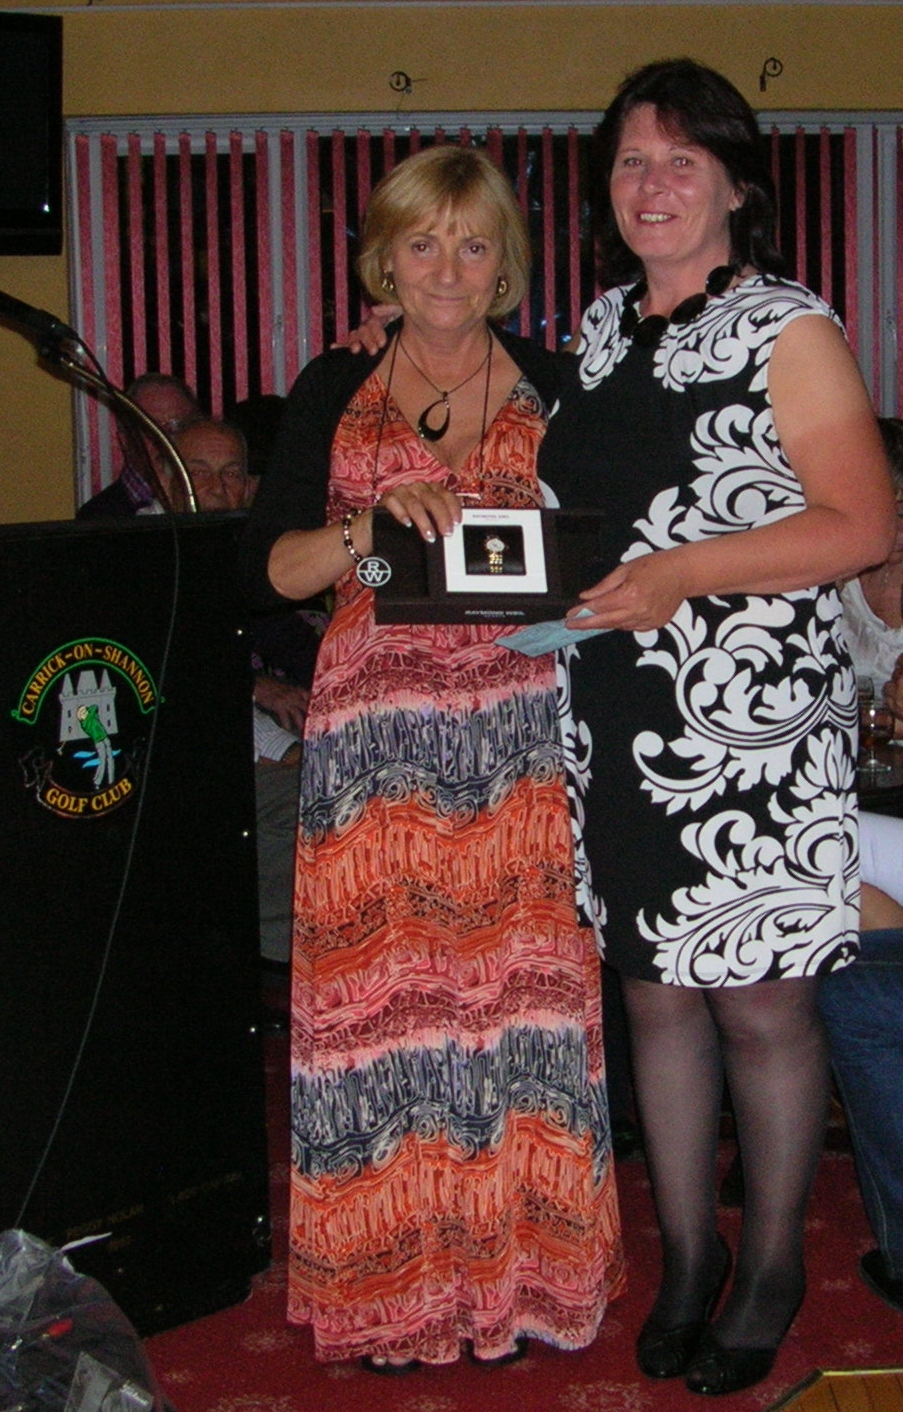 Lady Captain Mary King presents Lady Captains Prize 2012 to Brenda Kelly